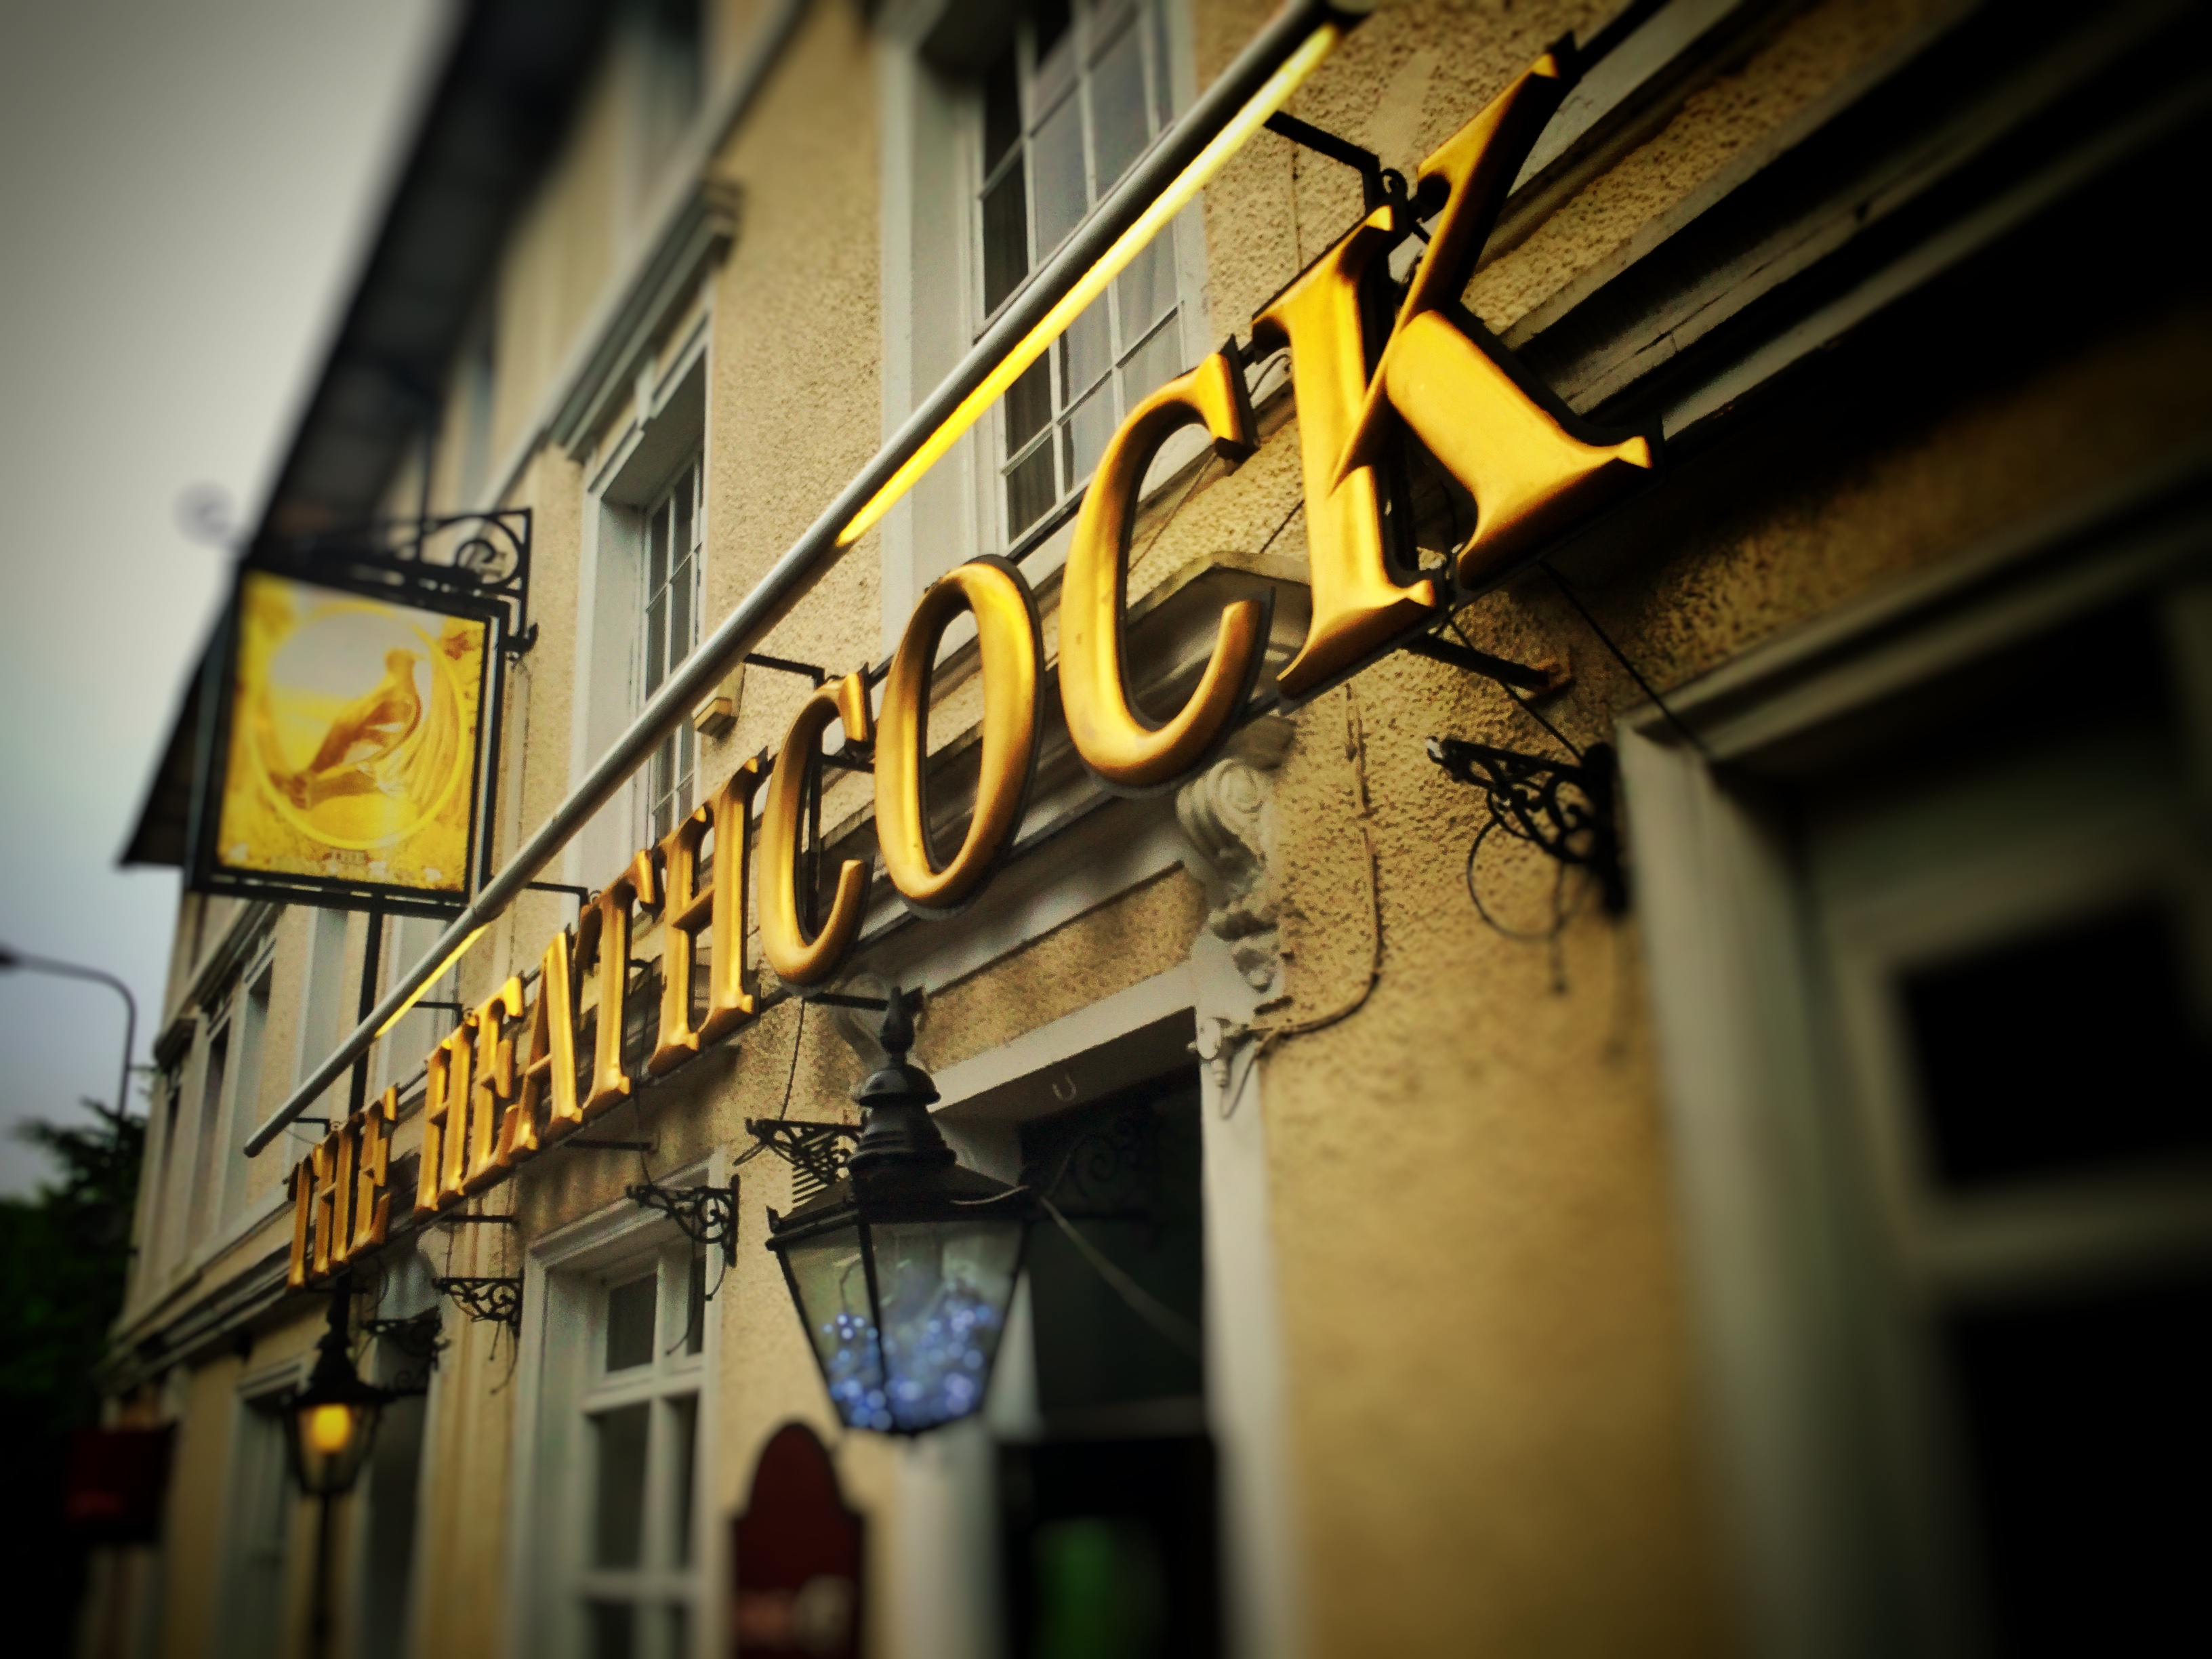 The Heathcock Pub